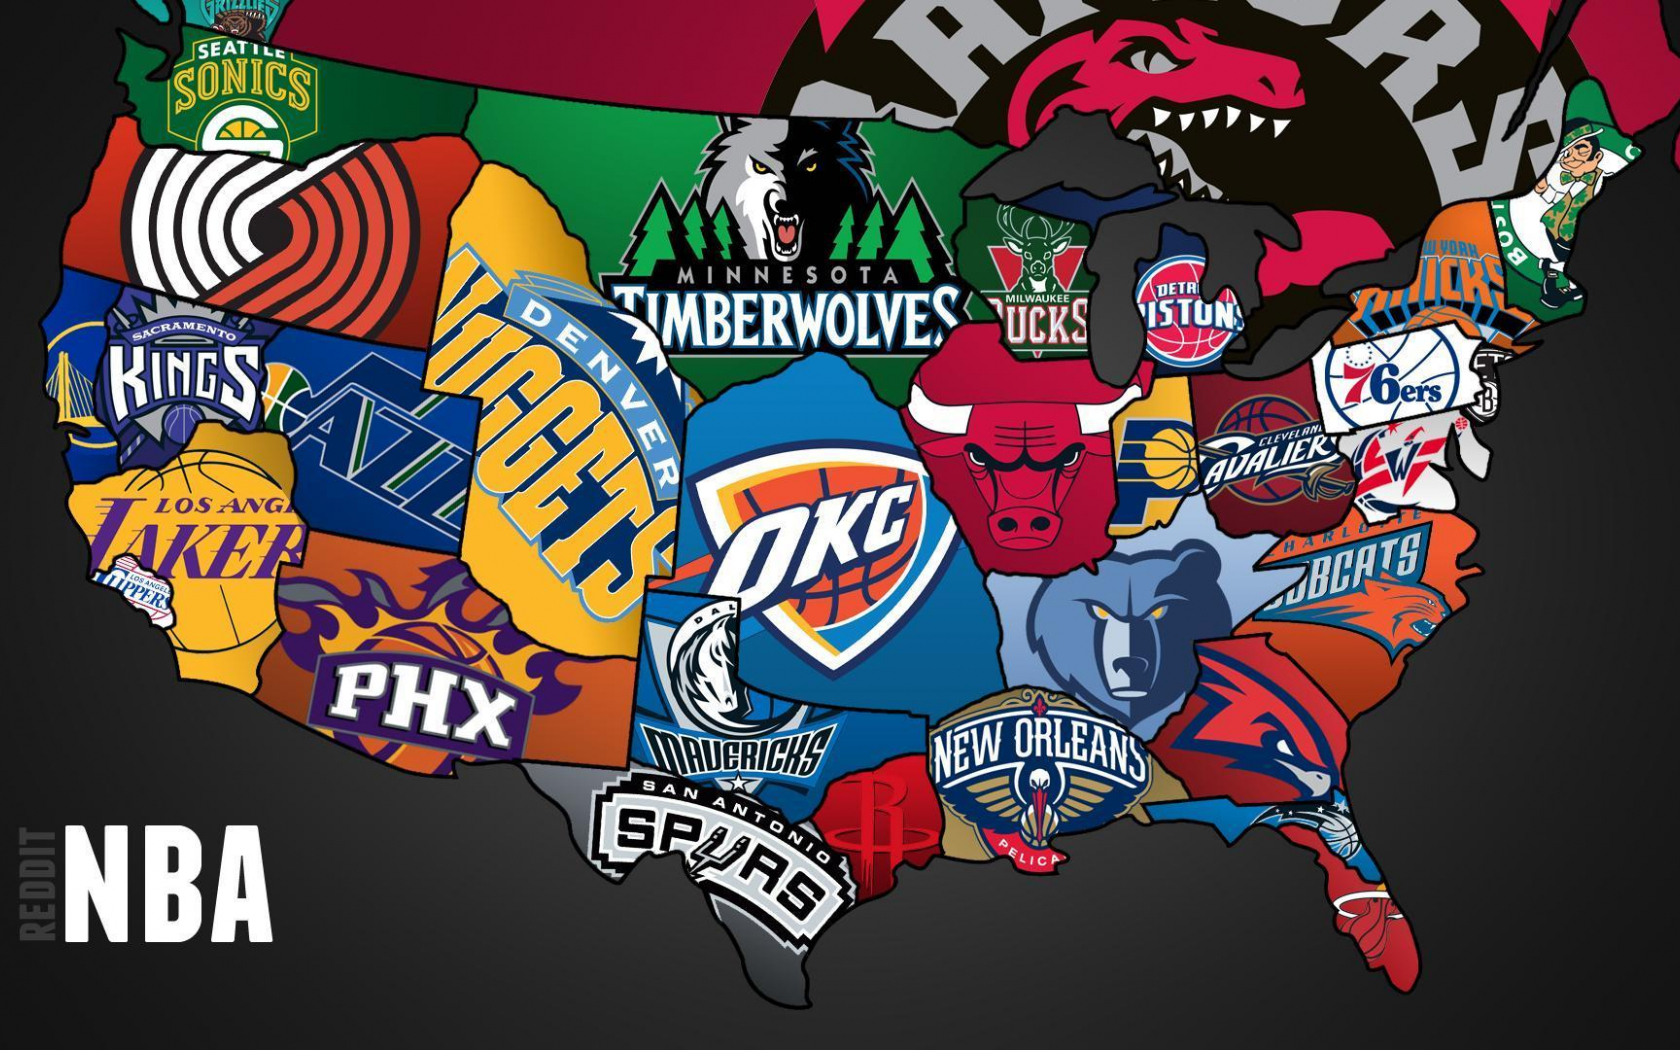 Free Download Httpwwwwallpapermadecomfrwallpaper1772cool Map Of Nba Teams 1920x1080 For Your Desktop Mobile Tablet Explore 49 Cool Nba Wallpapers For Iphone Best Phone Wallpaper Cool Wallpapers For Phone Iphone 5 Wallpapers